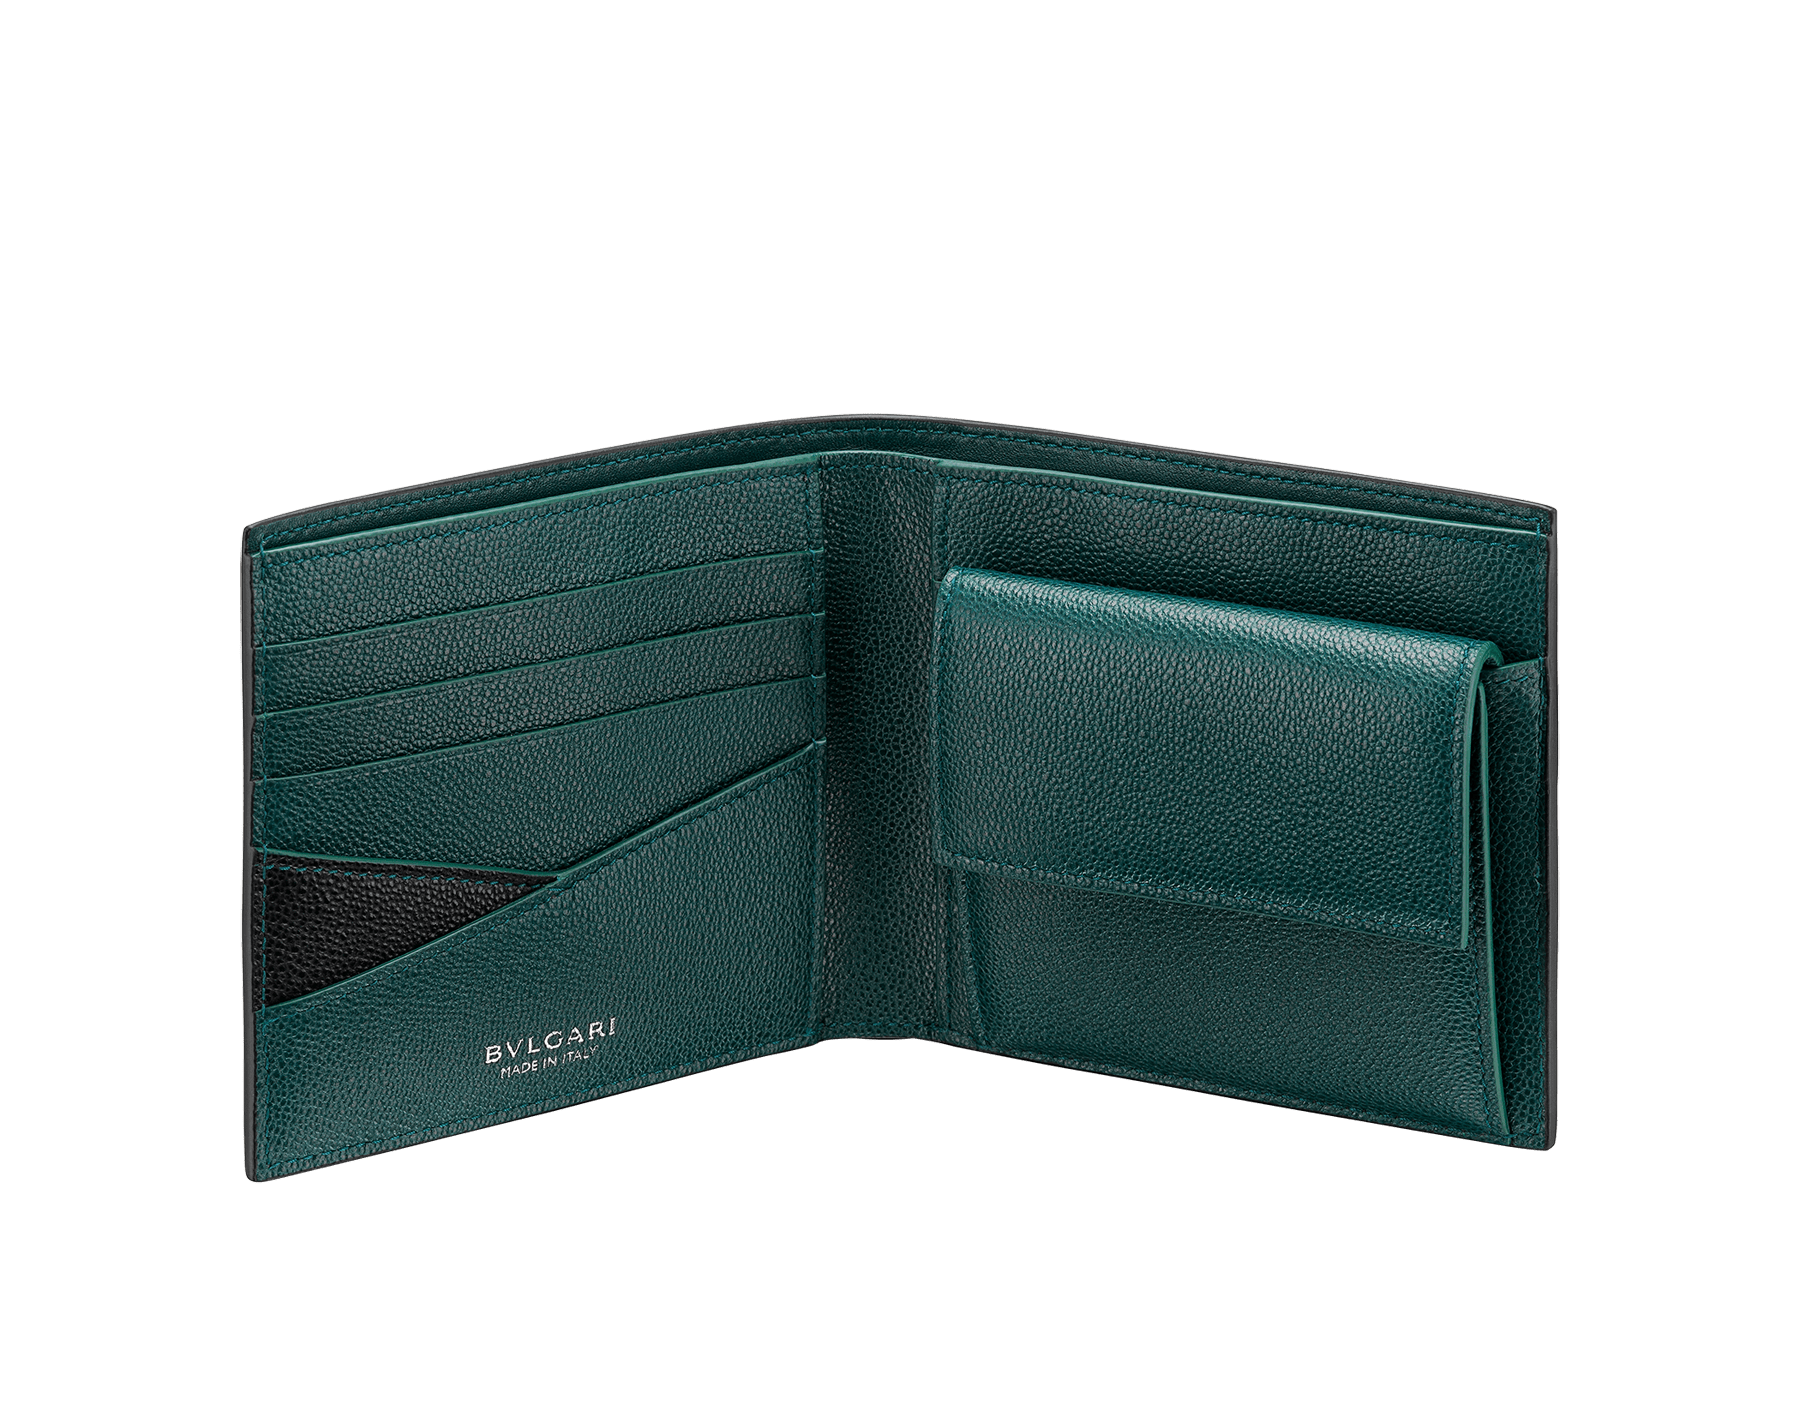 """""""BVLGARI BVLGARI"""" men's compact wallet in black and Forest Emerald green """"Urban"""" grain calf leather. Iconic logo embellishment in dark ruthenium-plated brass with black enameling. BBM-WLTITALASYM image 2"""